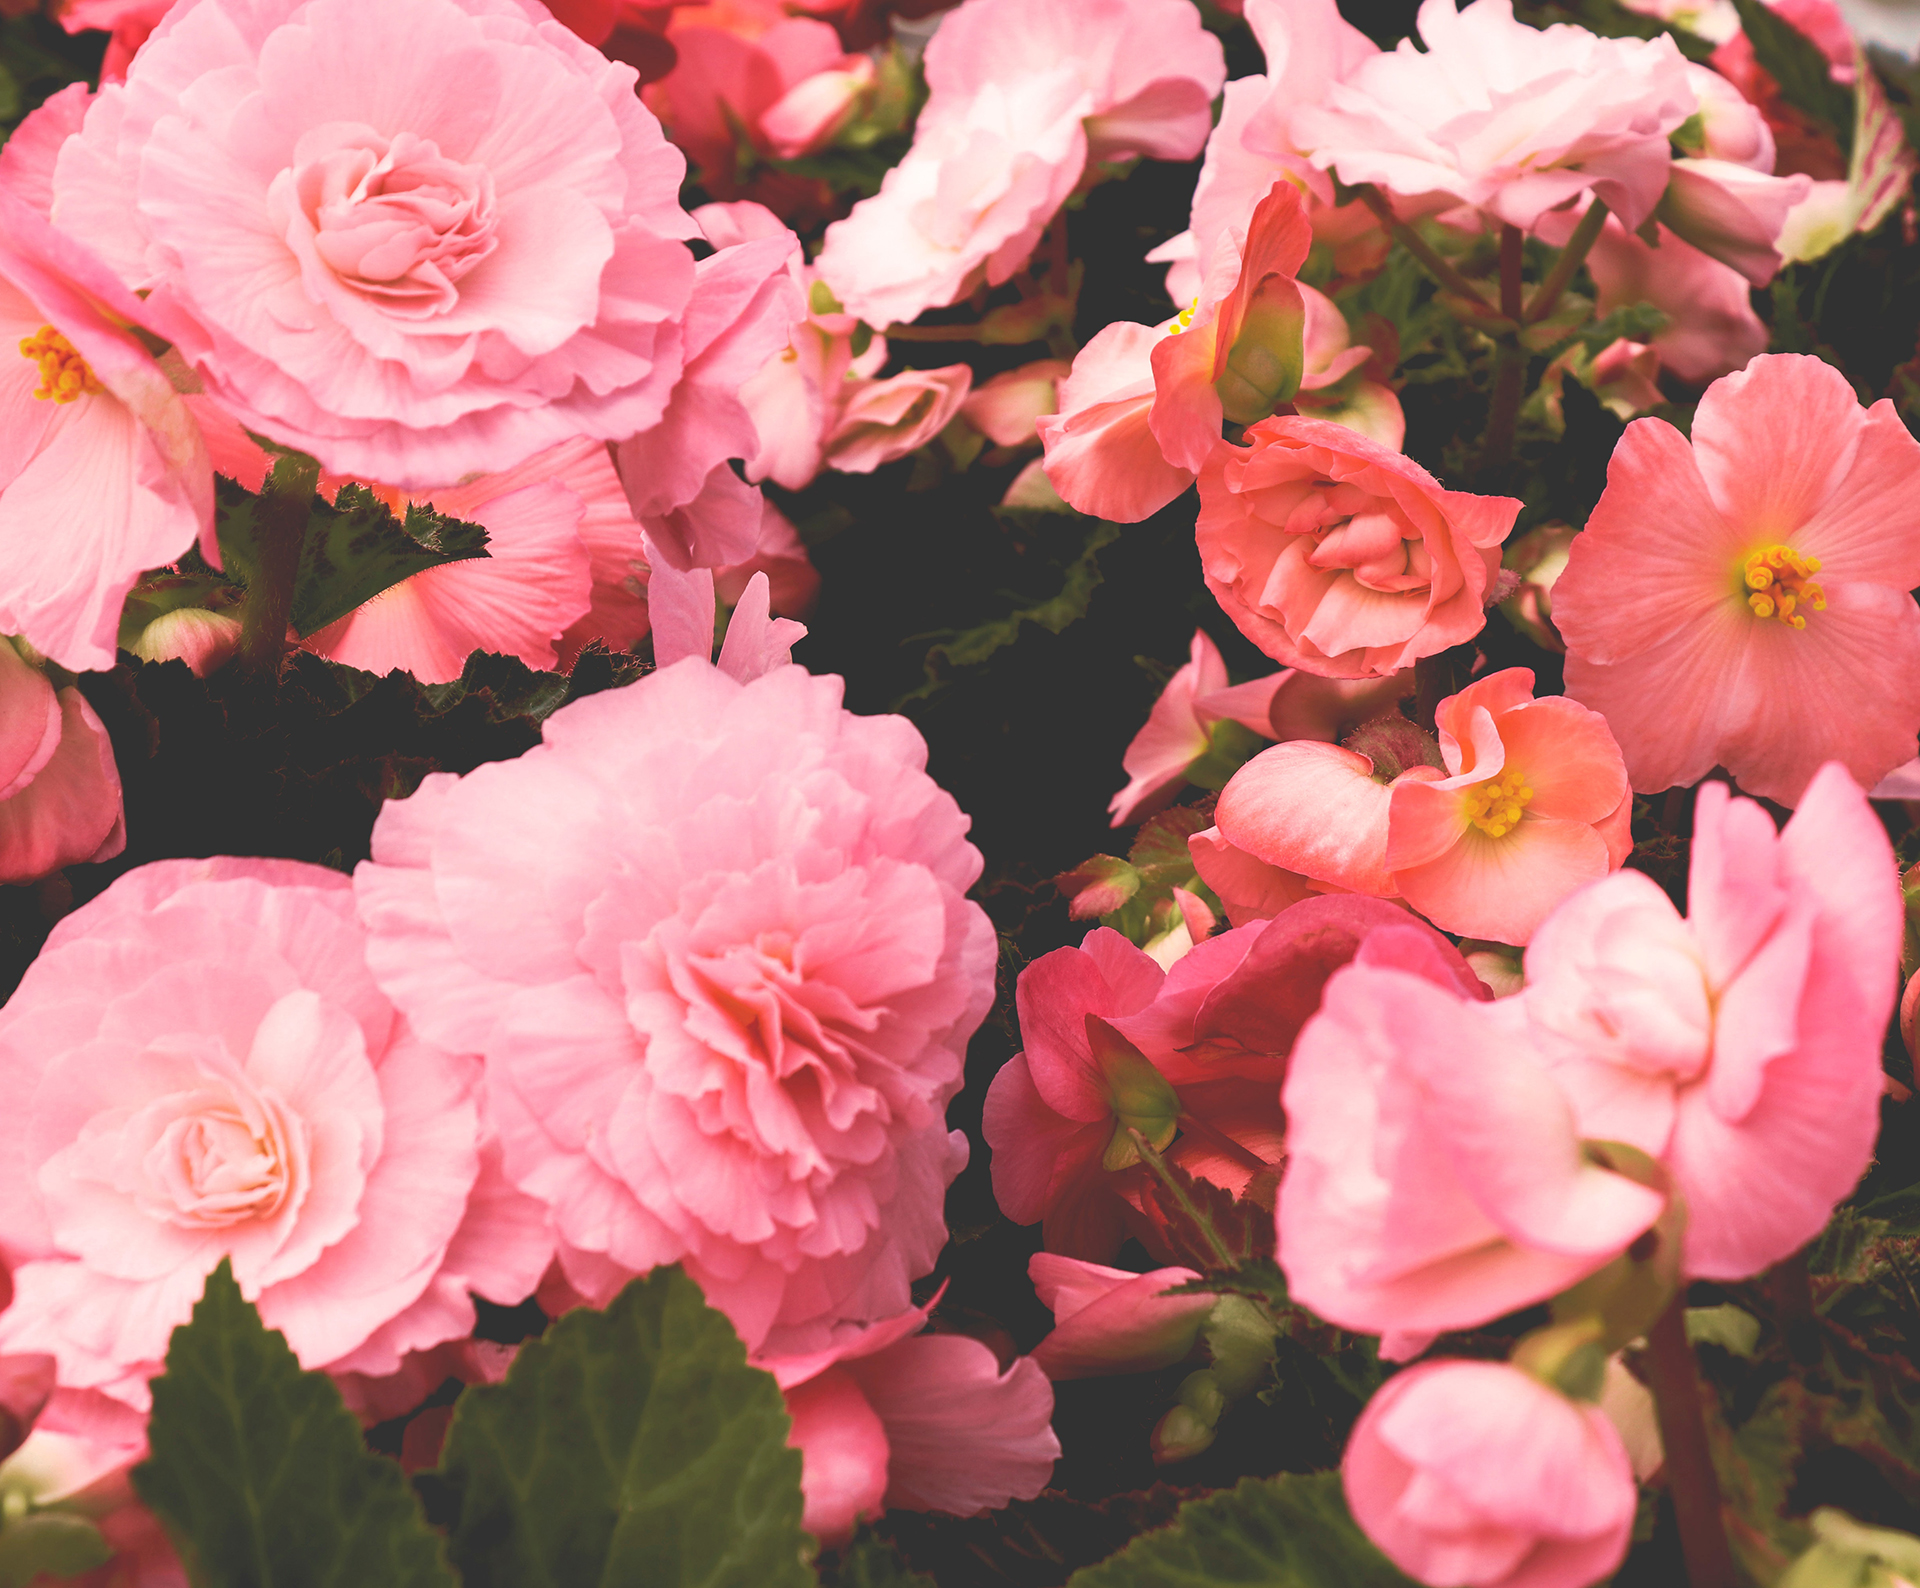 How to grow and care for tuberous begonias